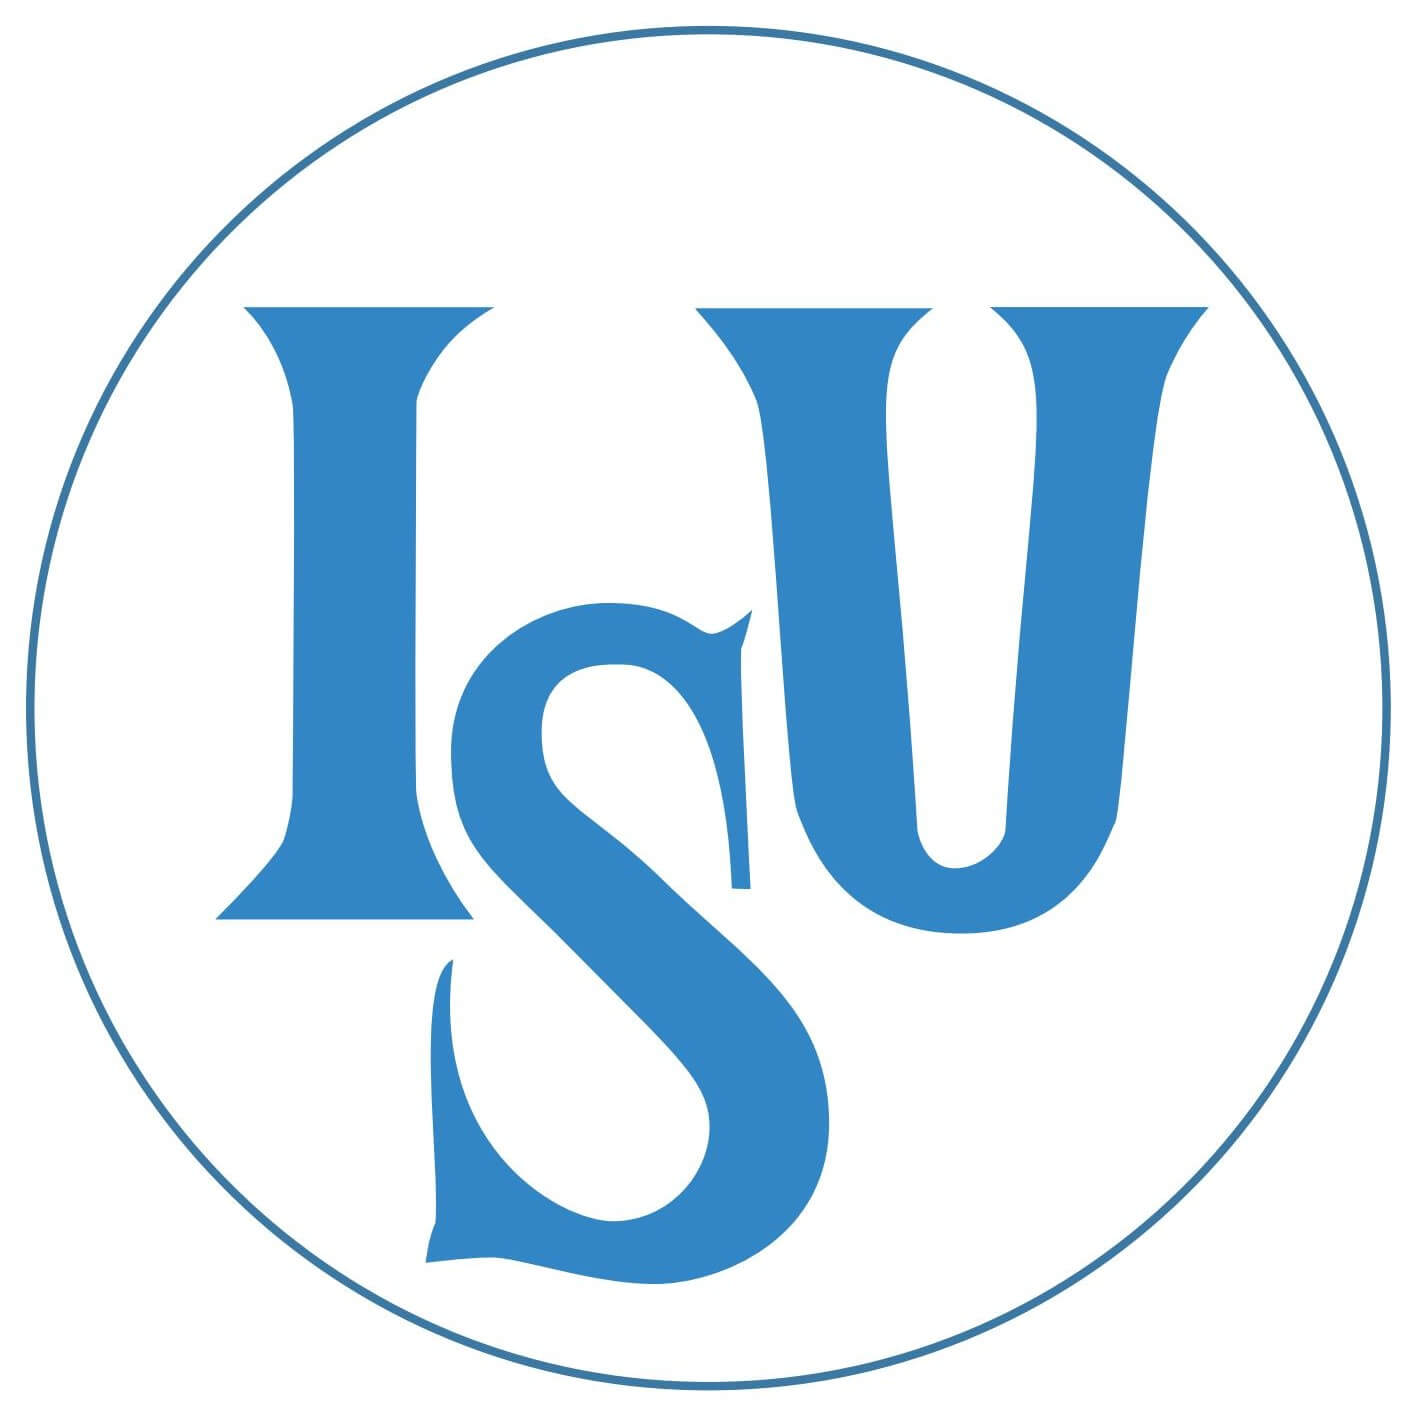 ISU International Skating Union logo